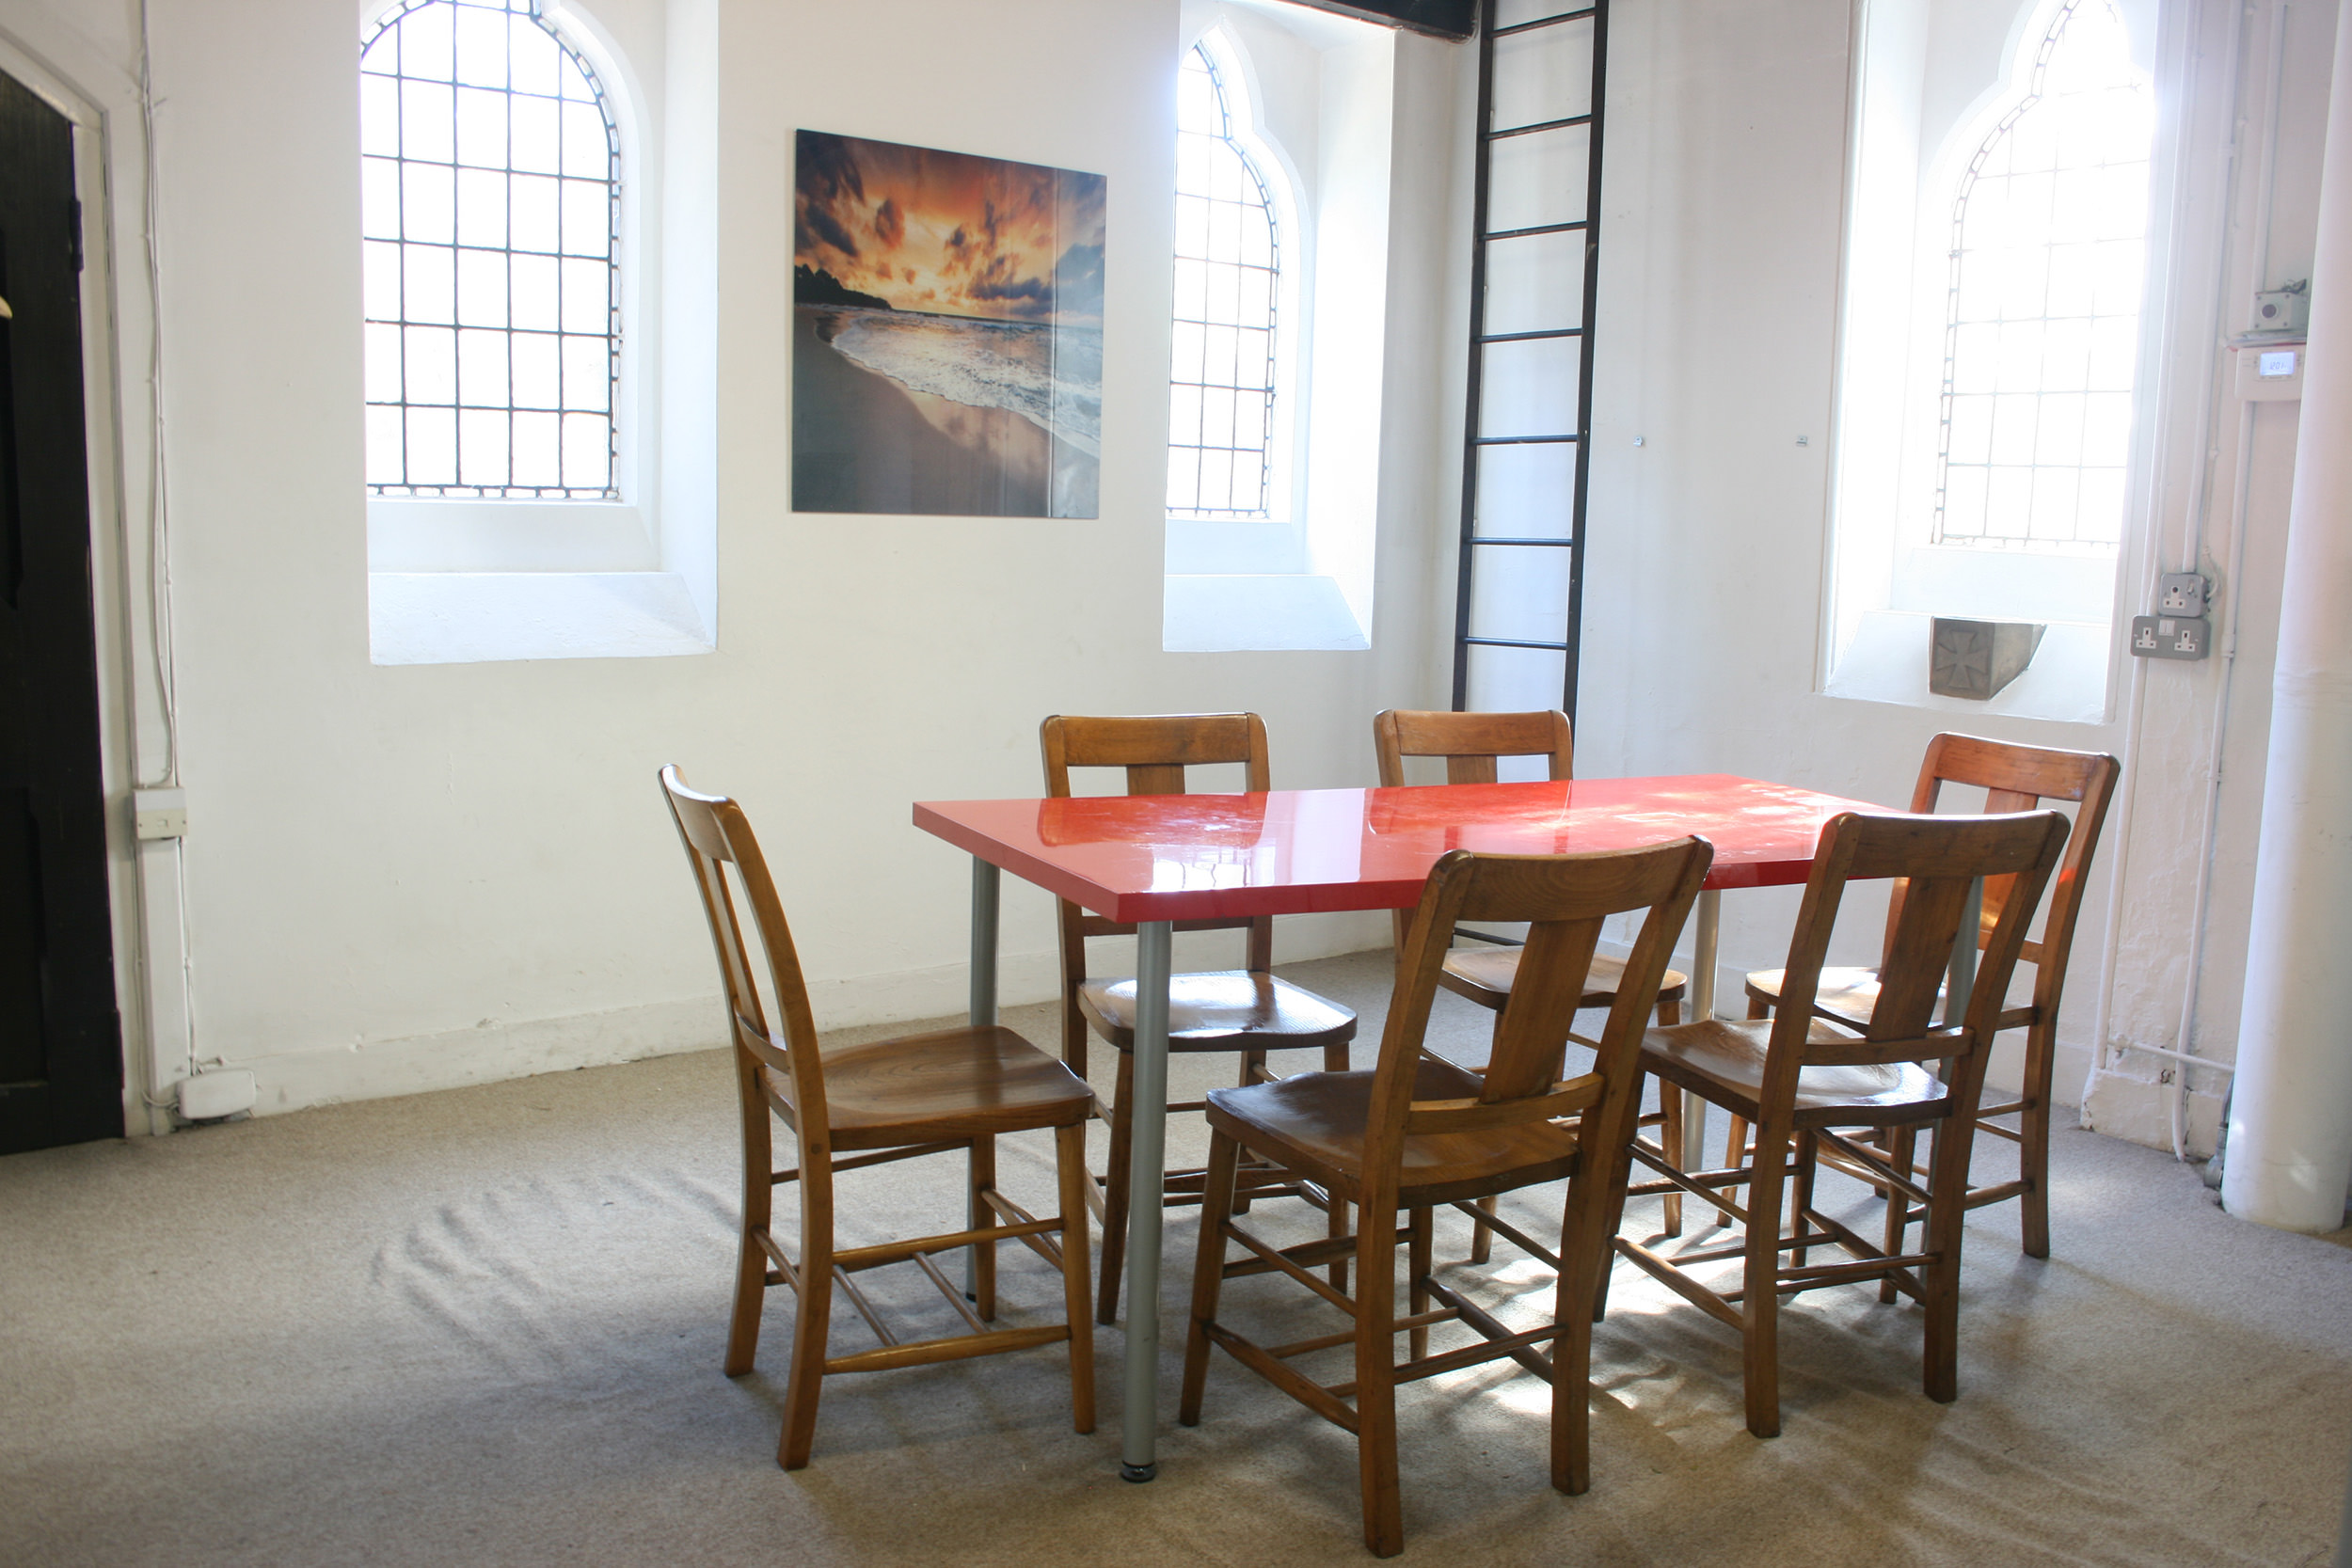 The Vestry Meeting Room, St George's - Capacity: 10 sitting or 15 standingHourly rate: £15